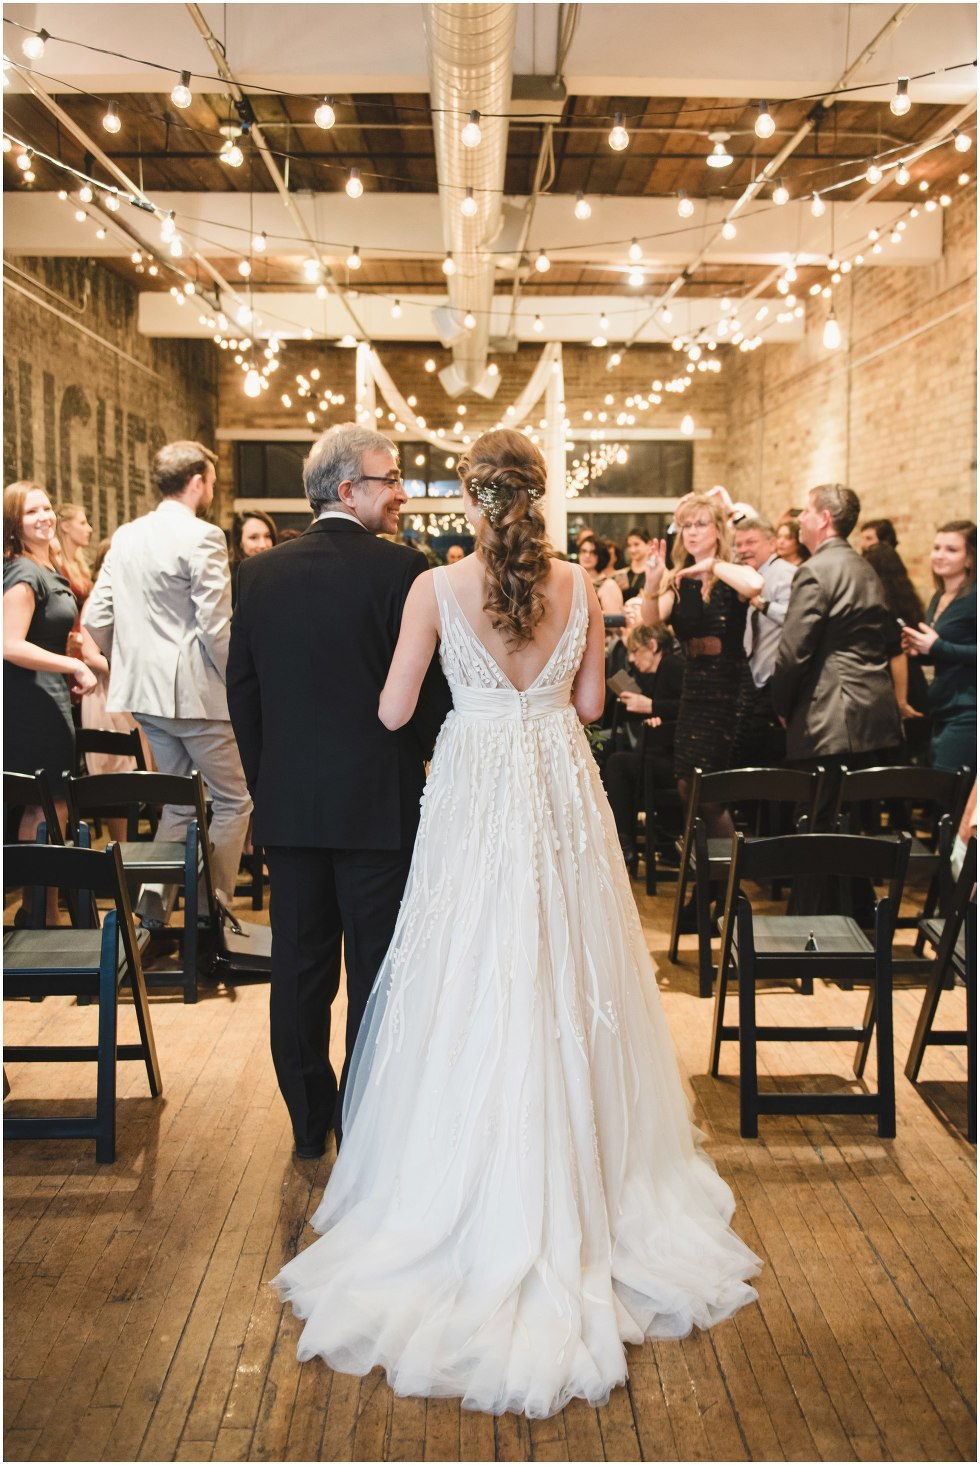 Gillian foster photography, Toronto wedding photographer